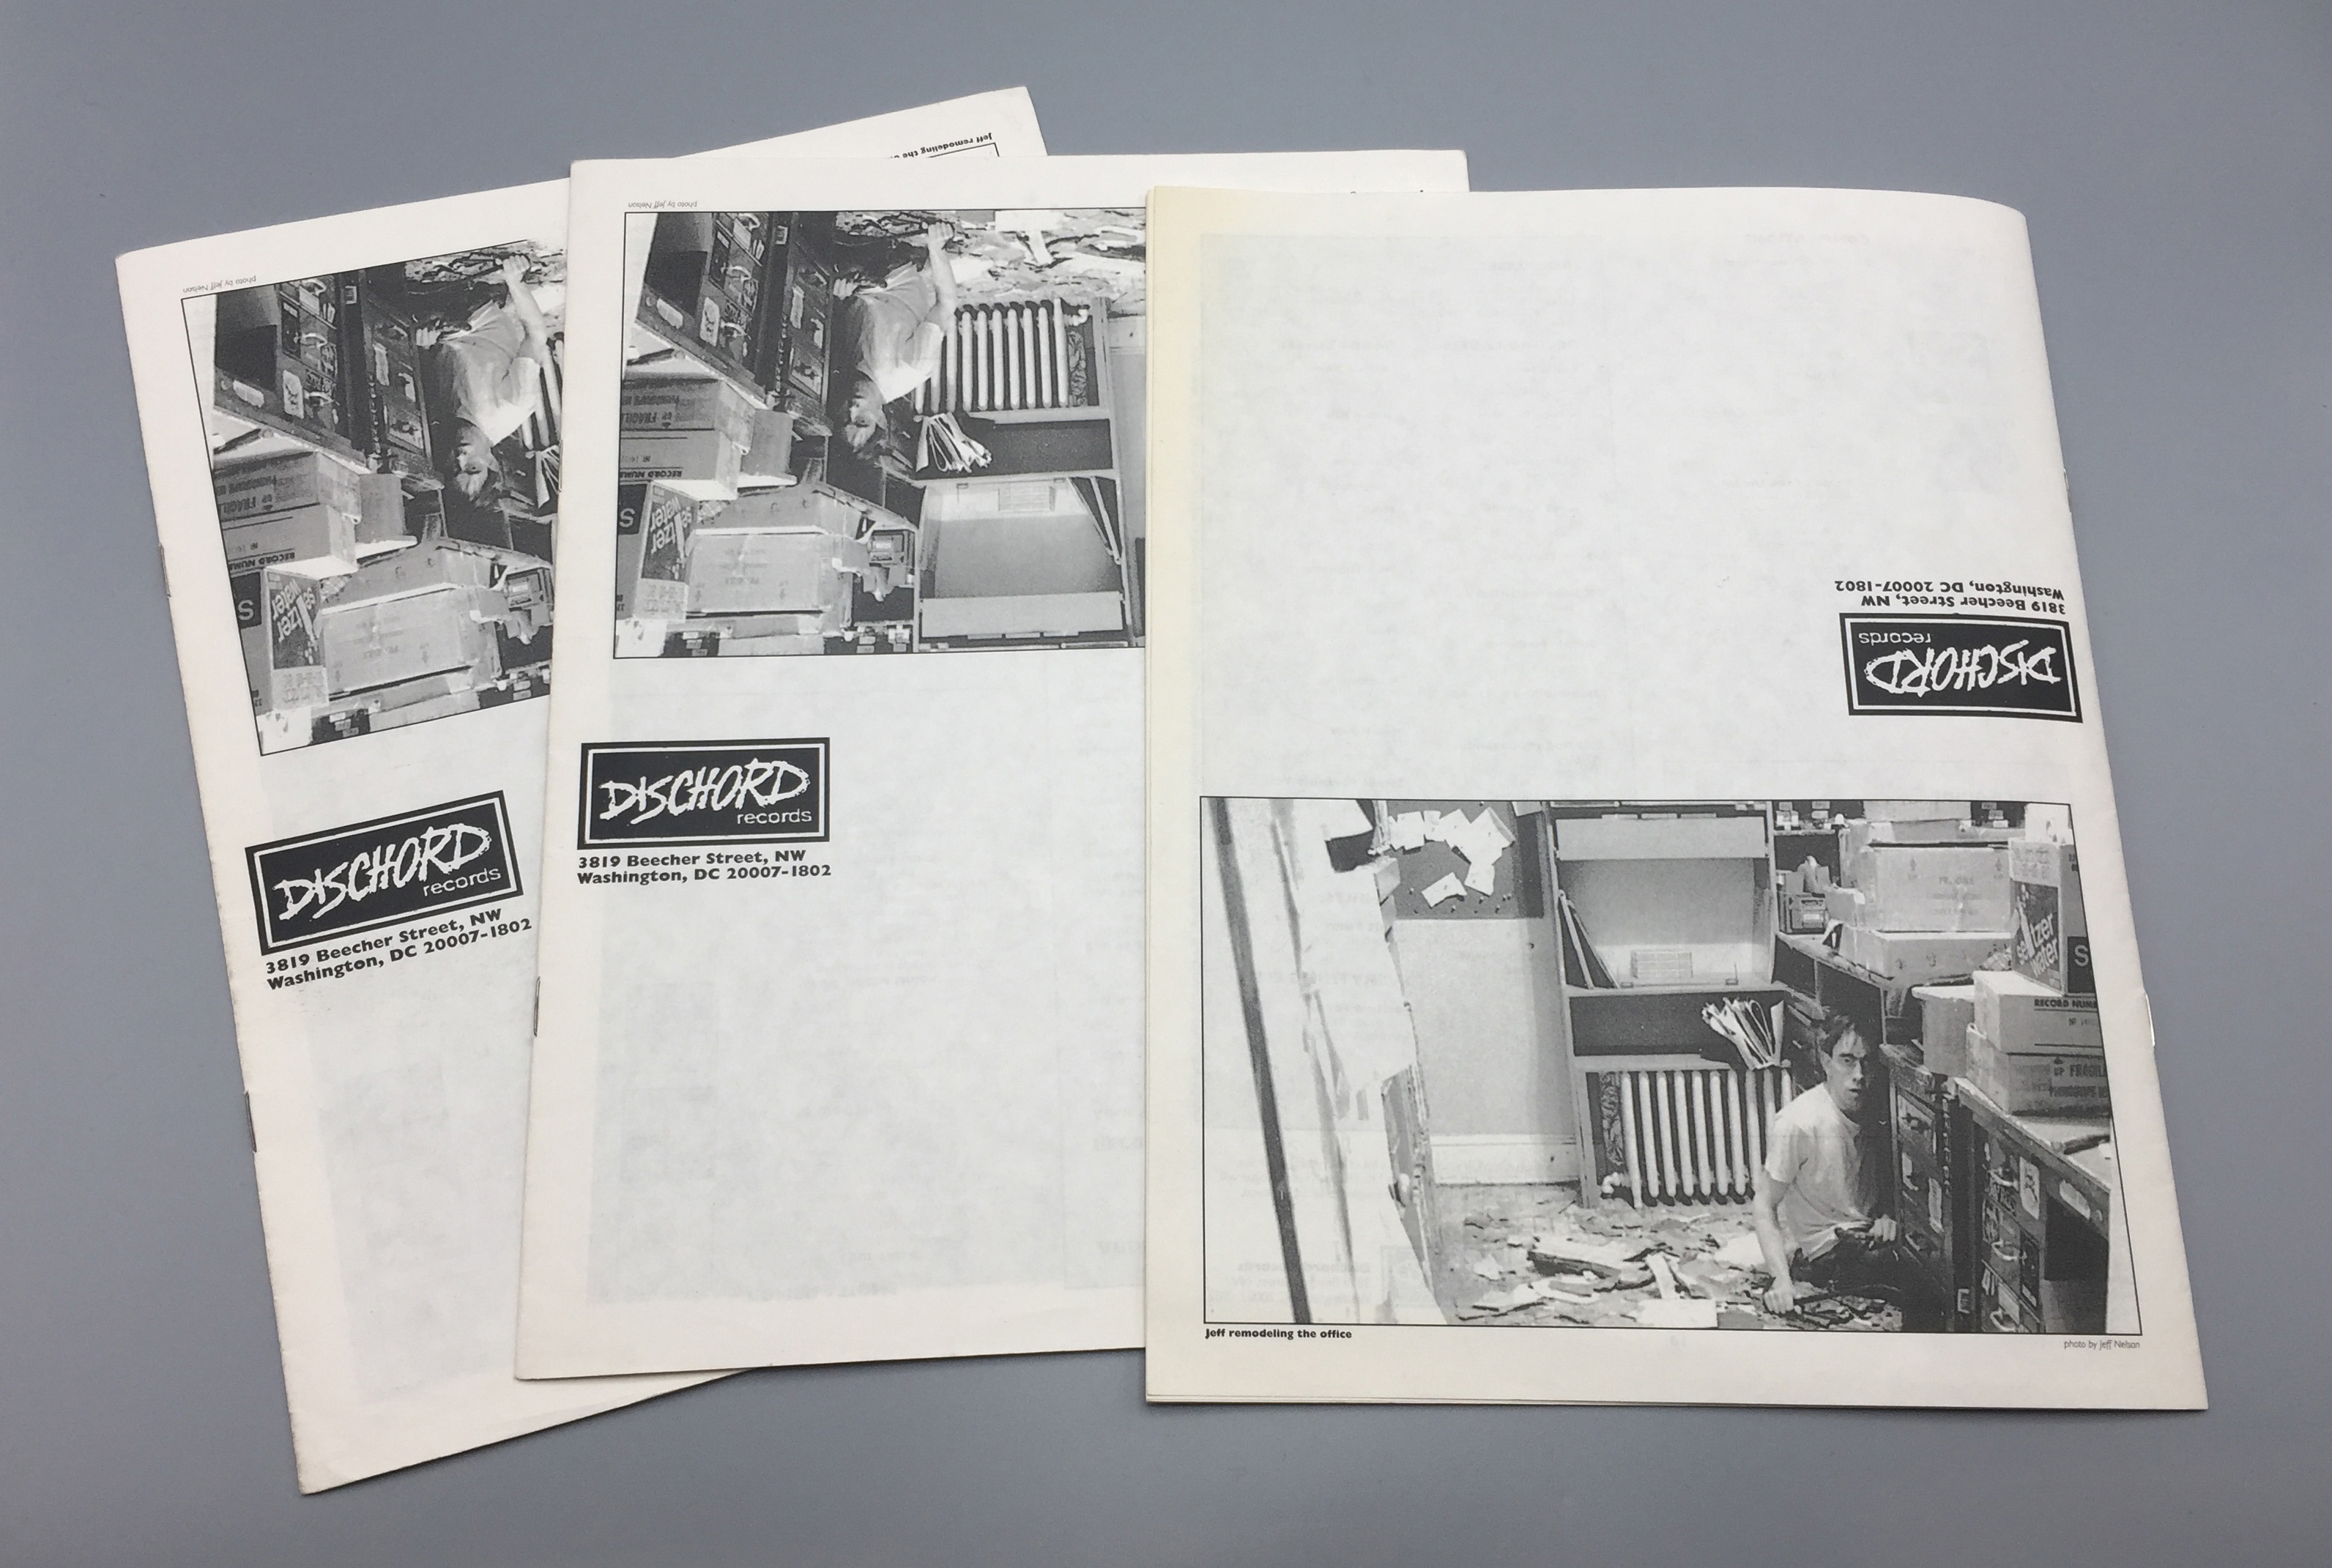 Dischord Records printed catalogs, 1992 & 1993